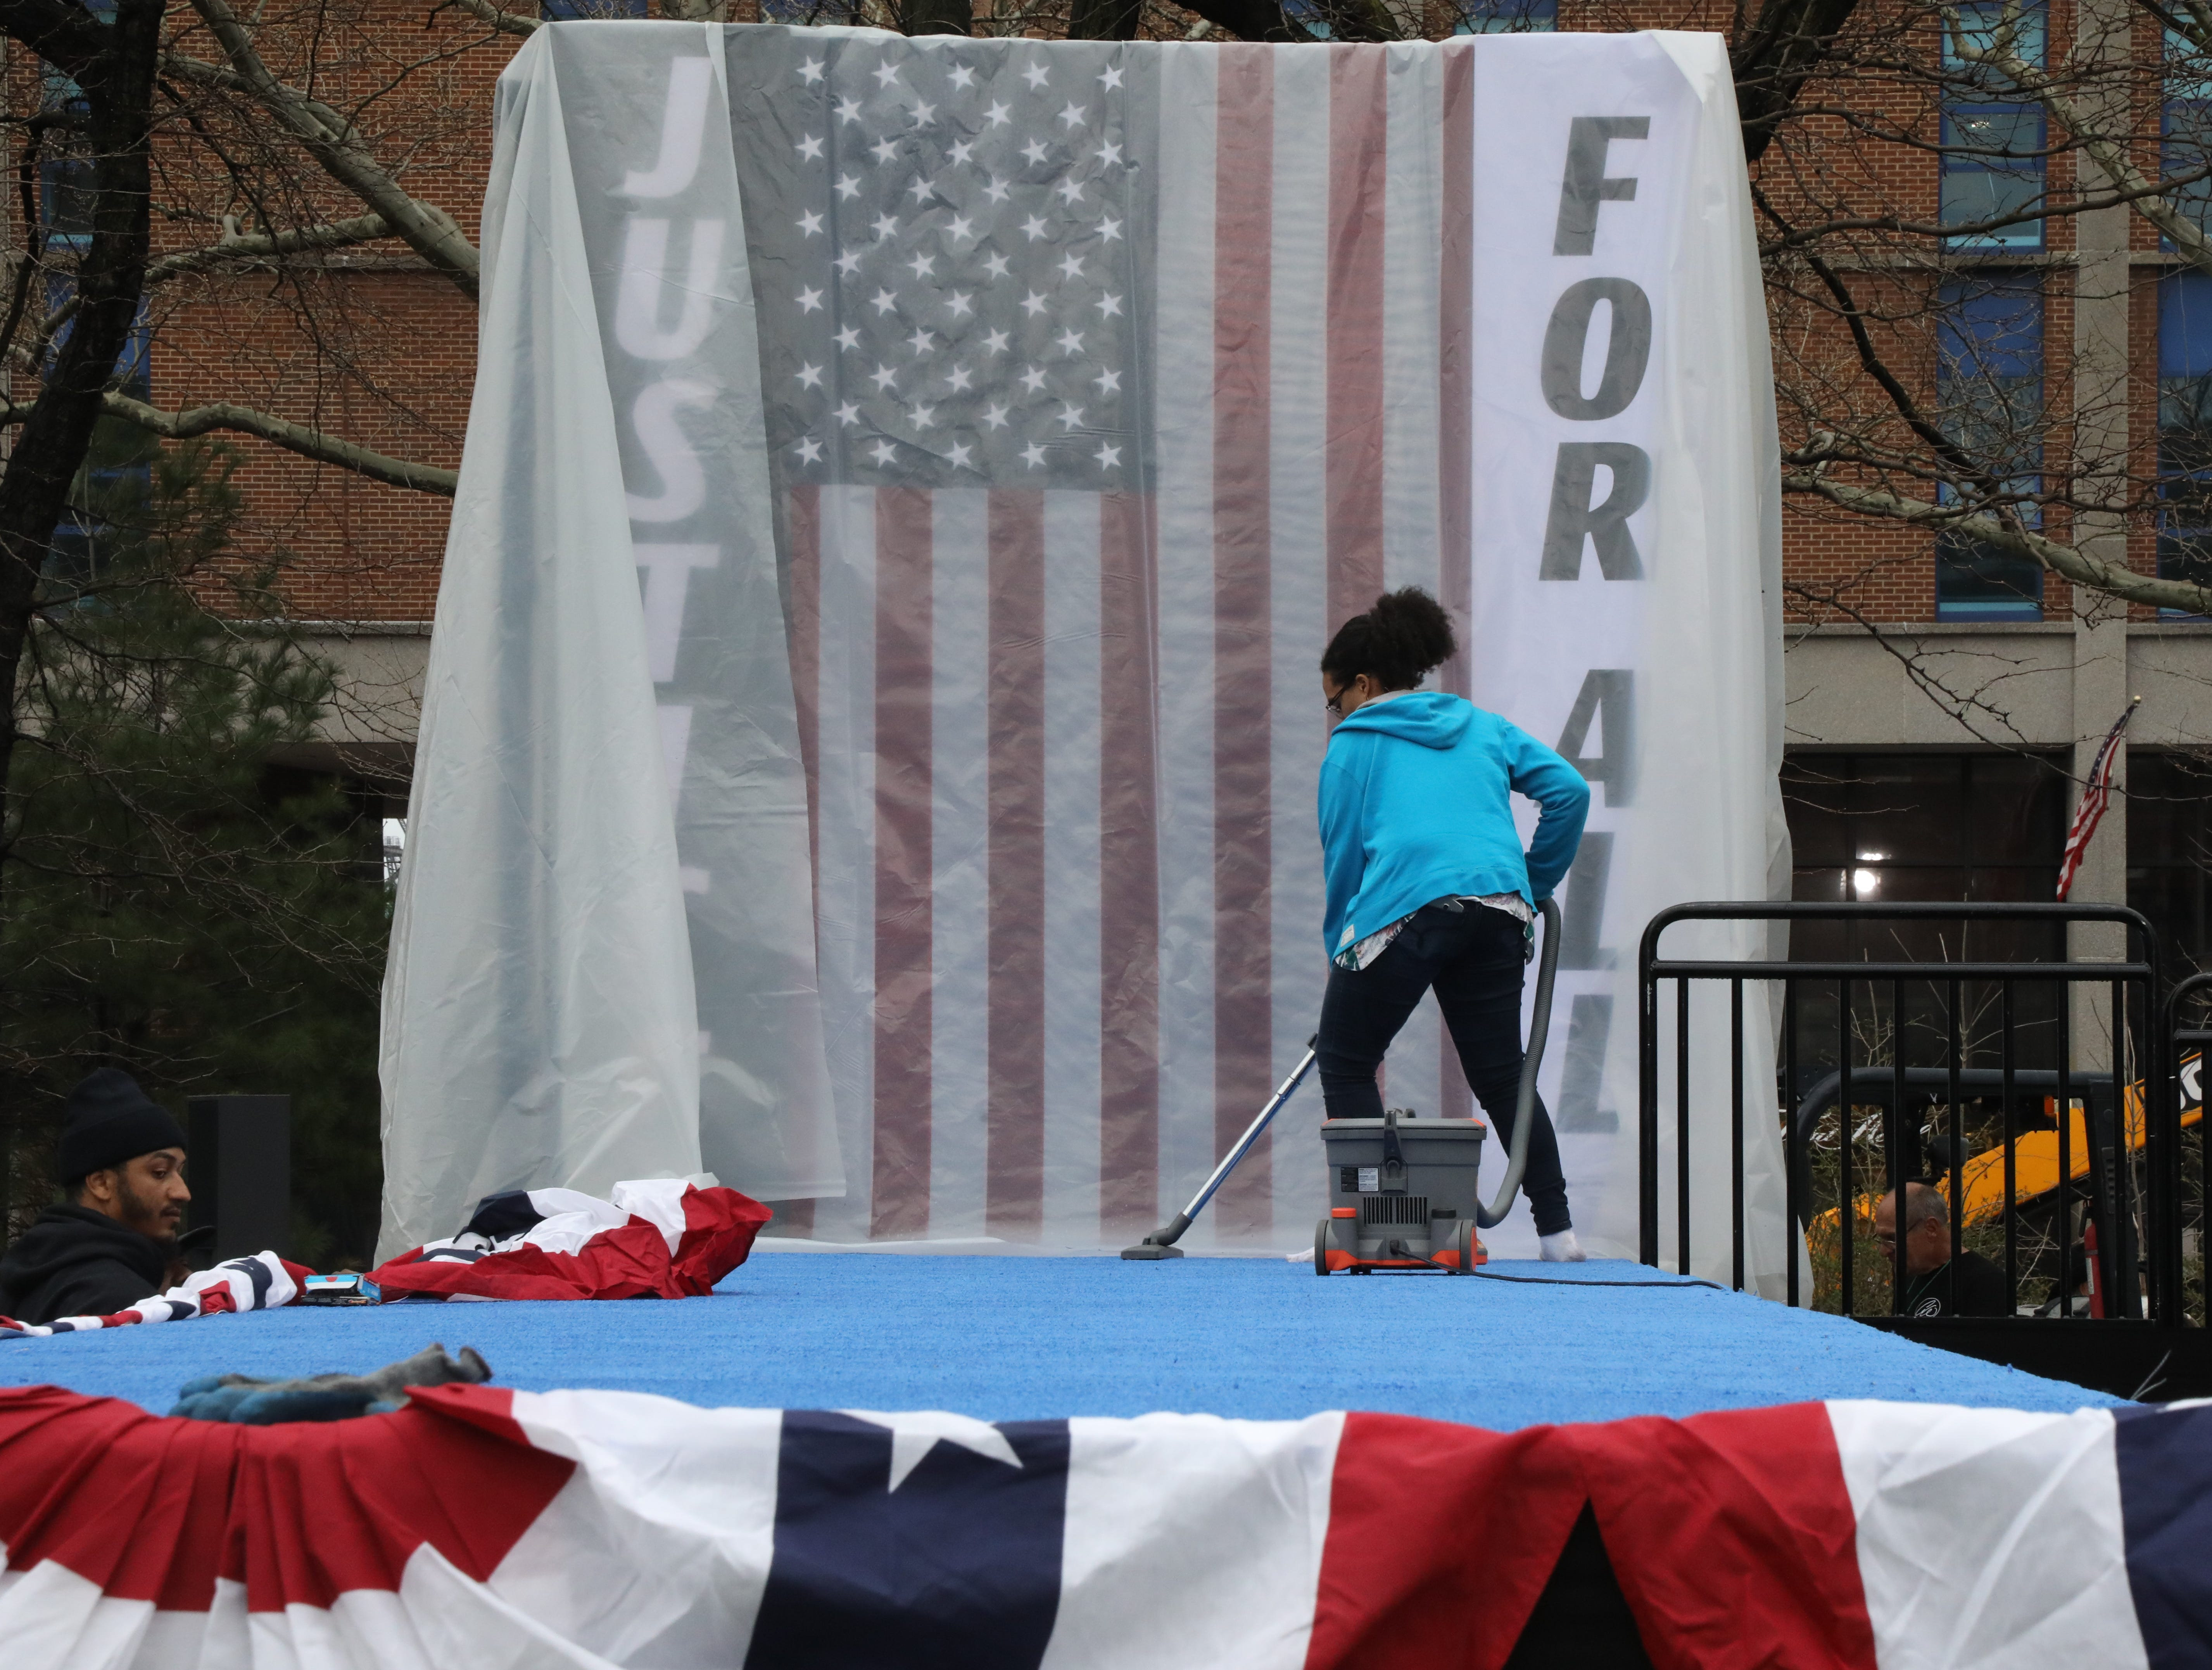 Campaign staff vacuum the stage that Cory Booker will enter to start a rally to kick off the Cory Booker campaign for president was held at Military Park in Newark on April 13, 2019.